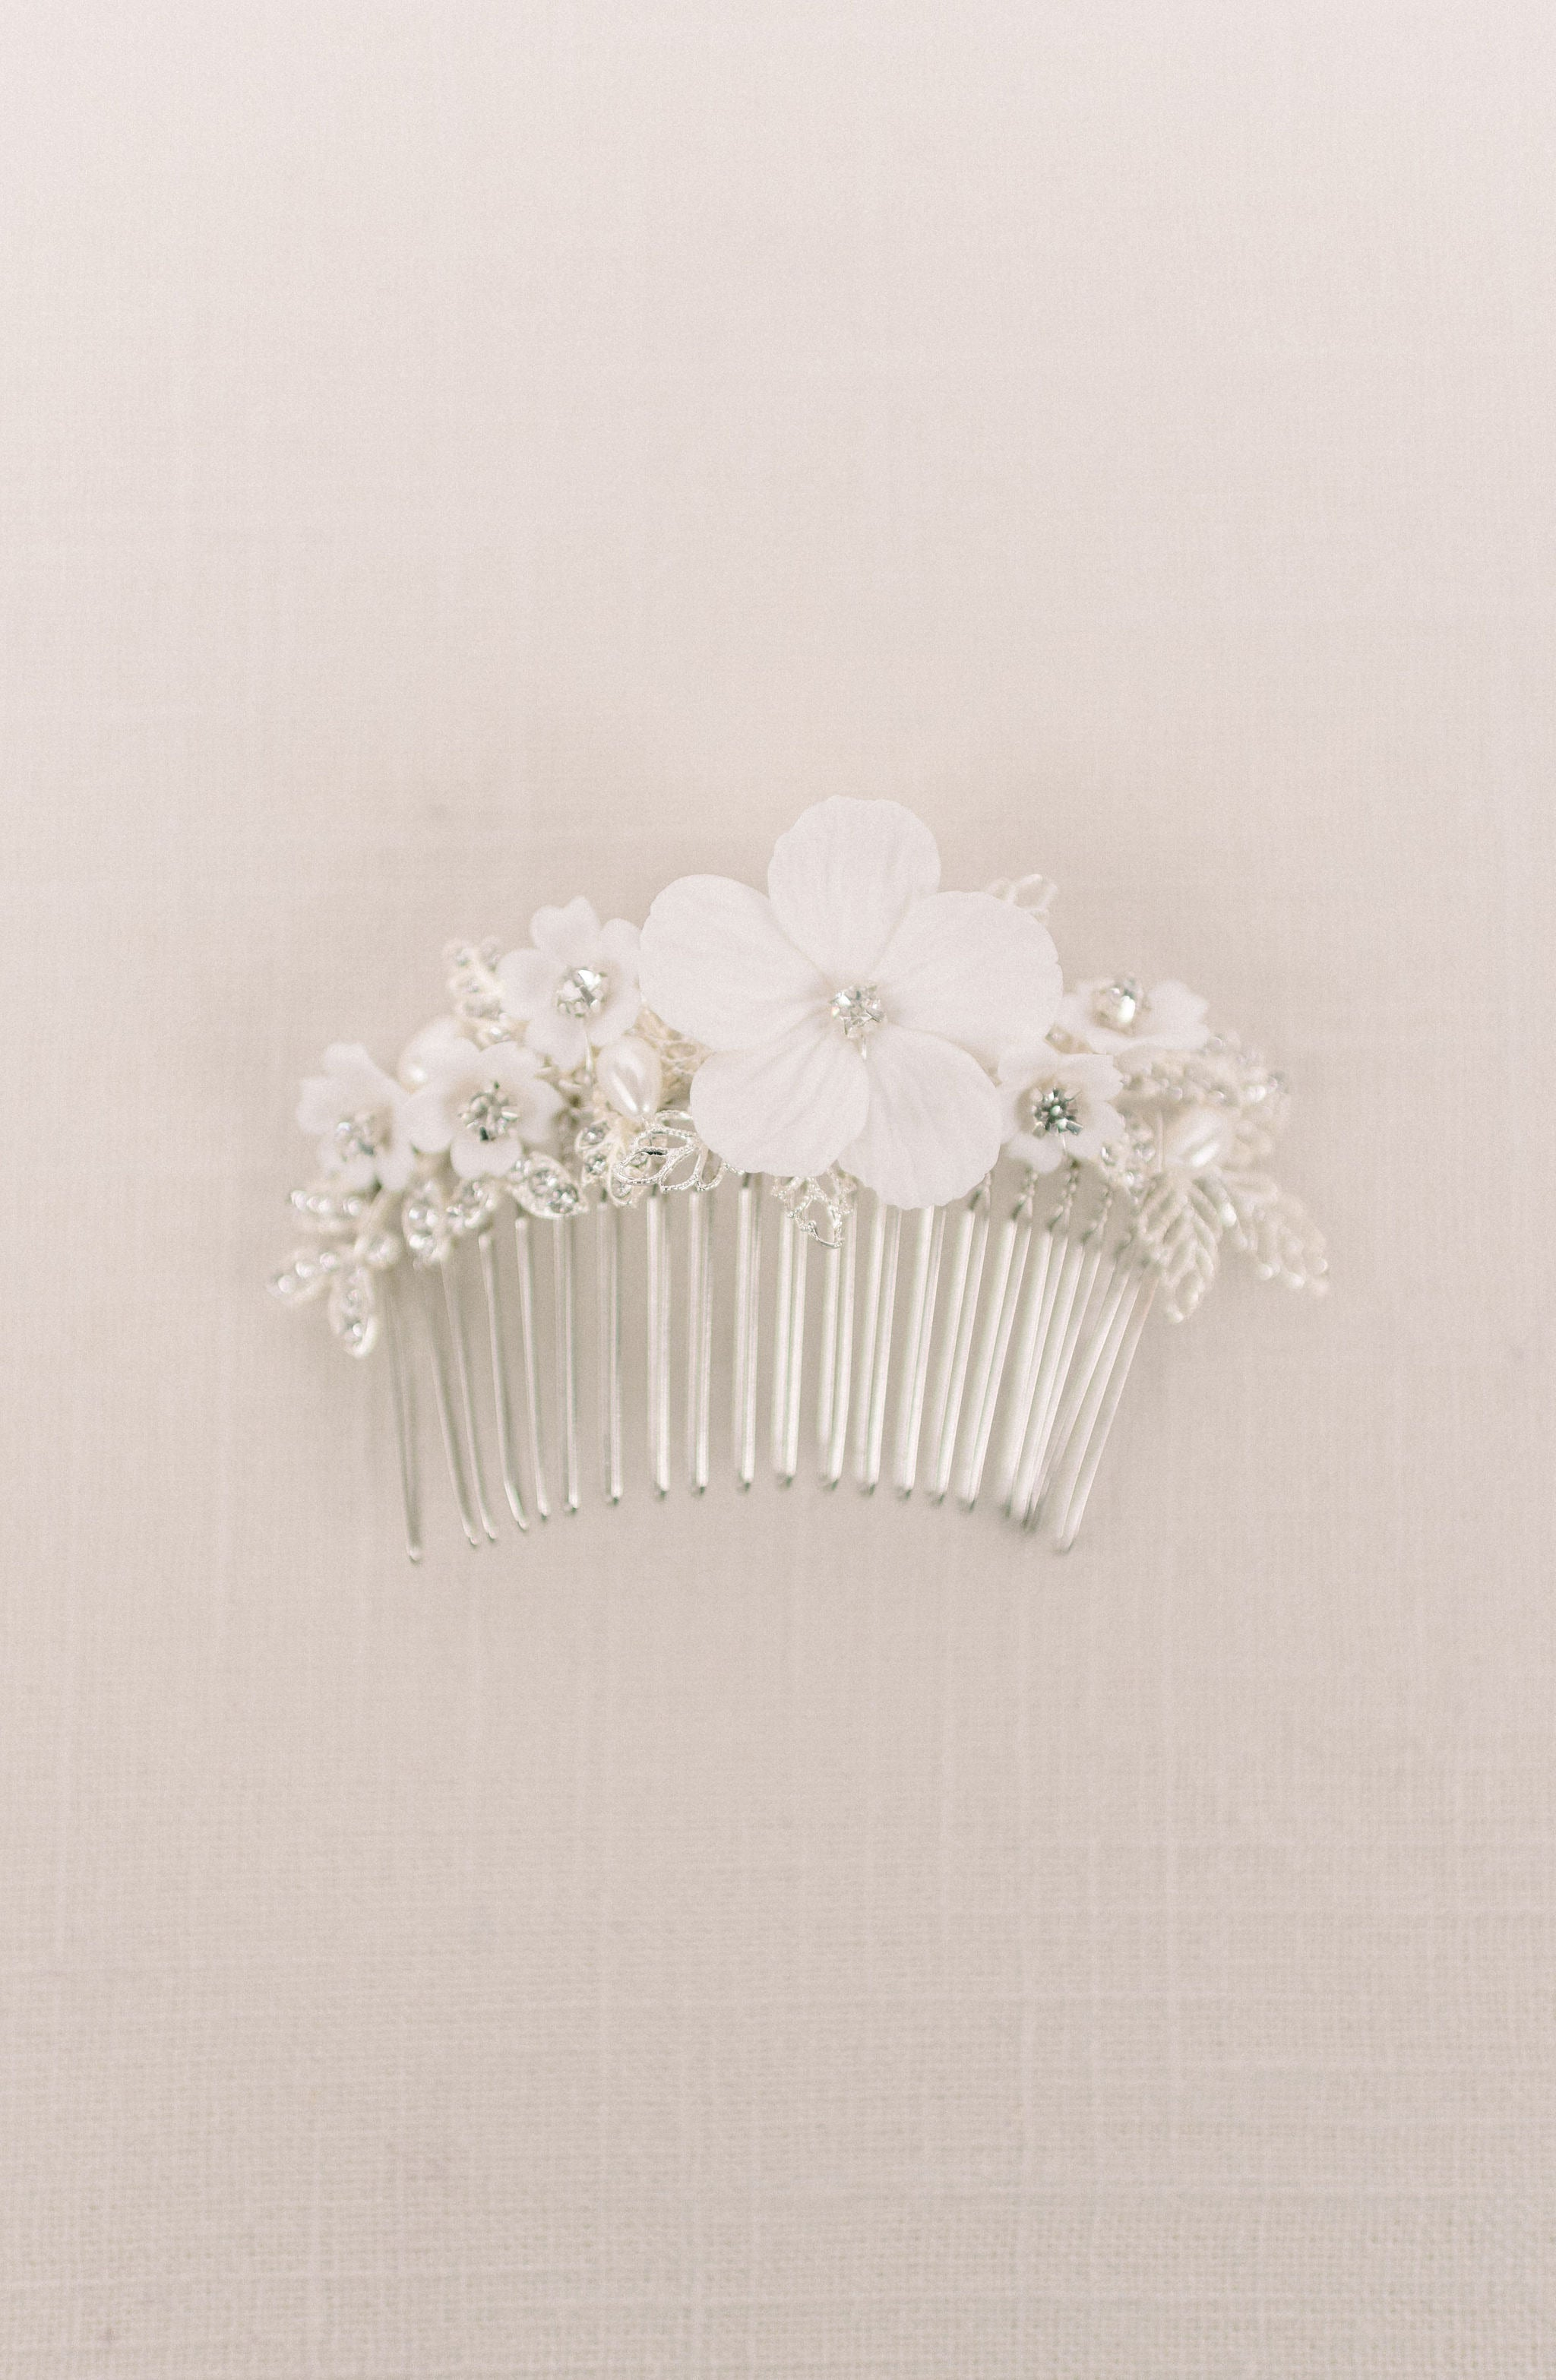 Silver clay flower headpiece - style 5006 - Tessa Kim